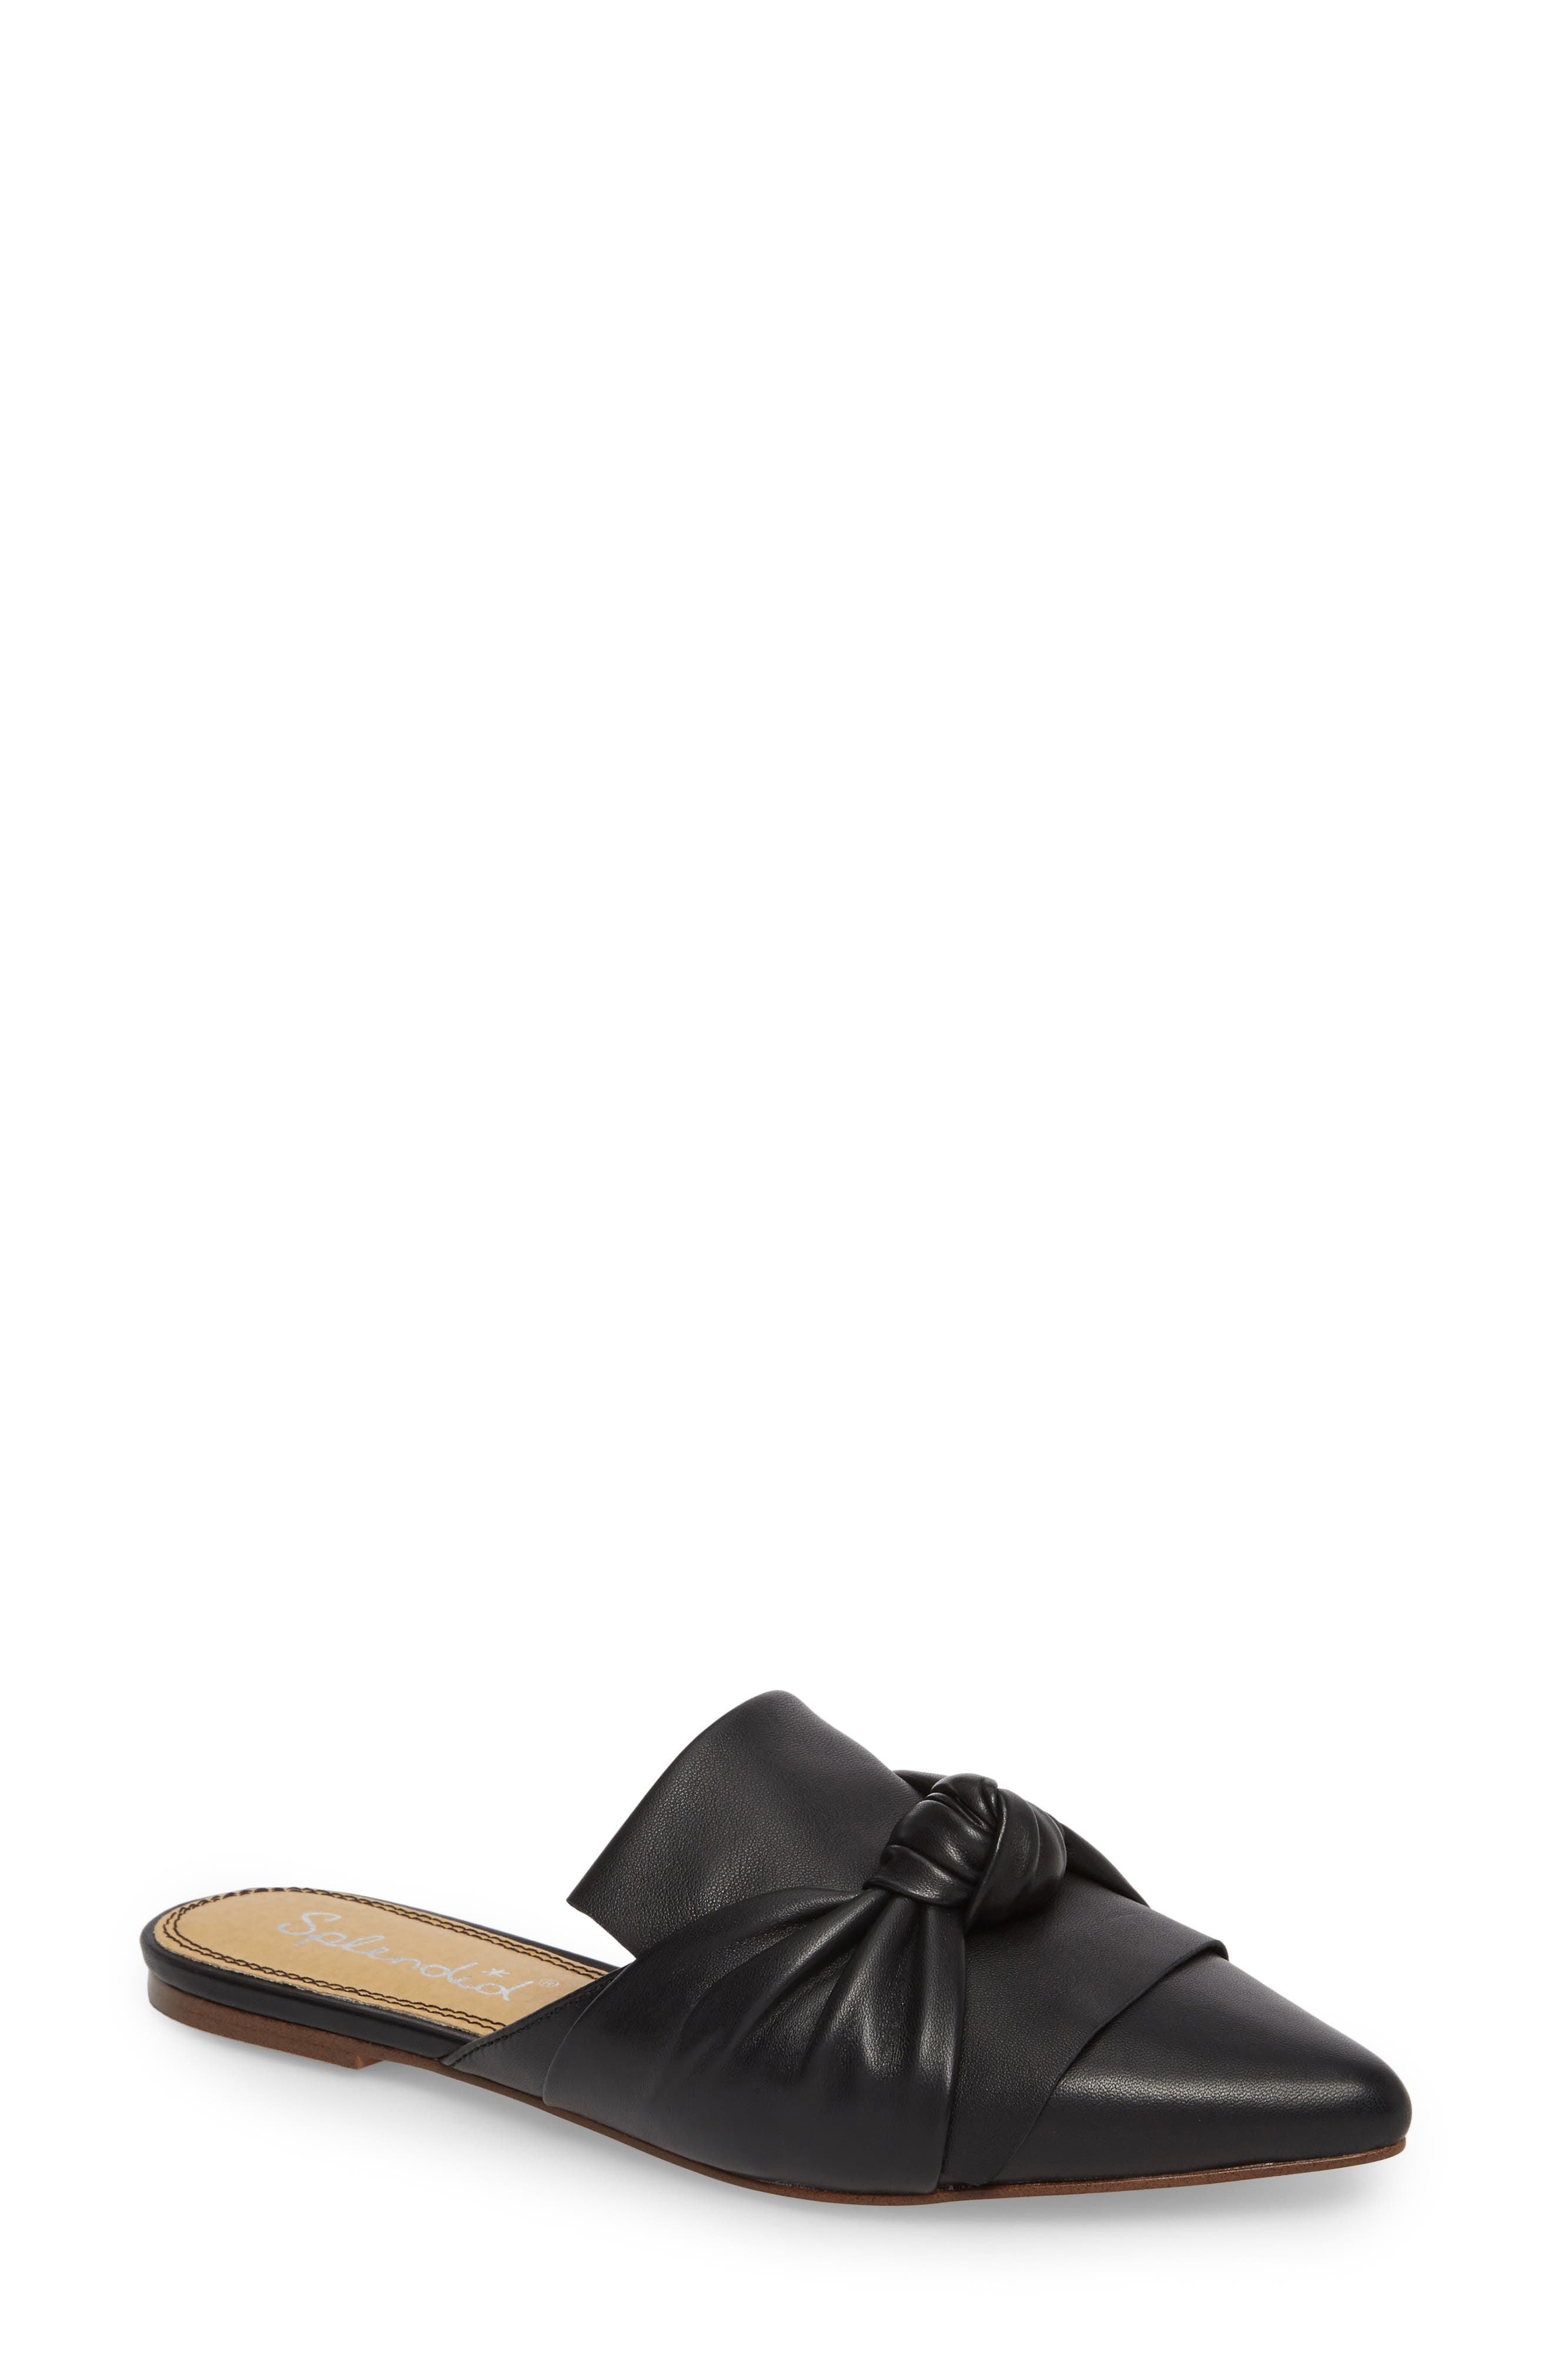 Bassett Knotted Pointy Toe Mule,                             Main thumbnail 1, color,                             002